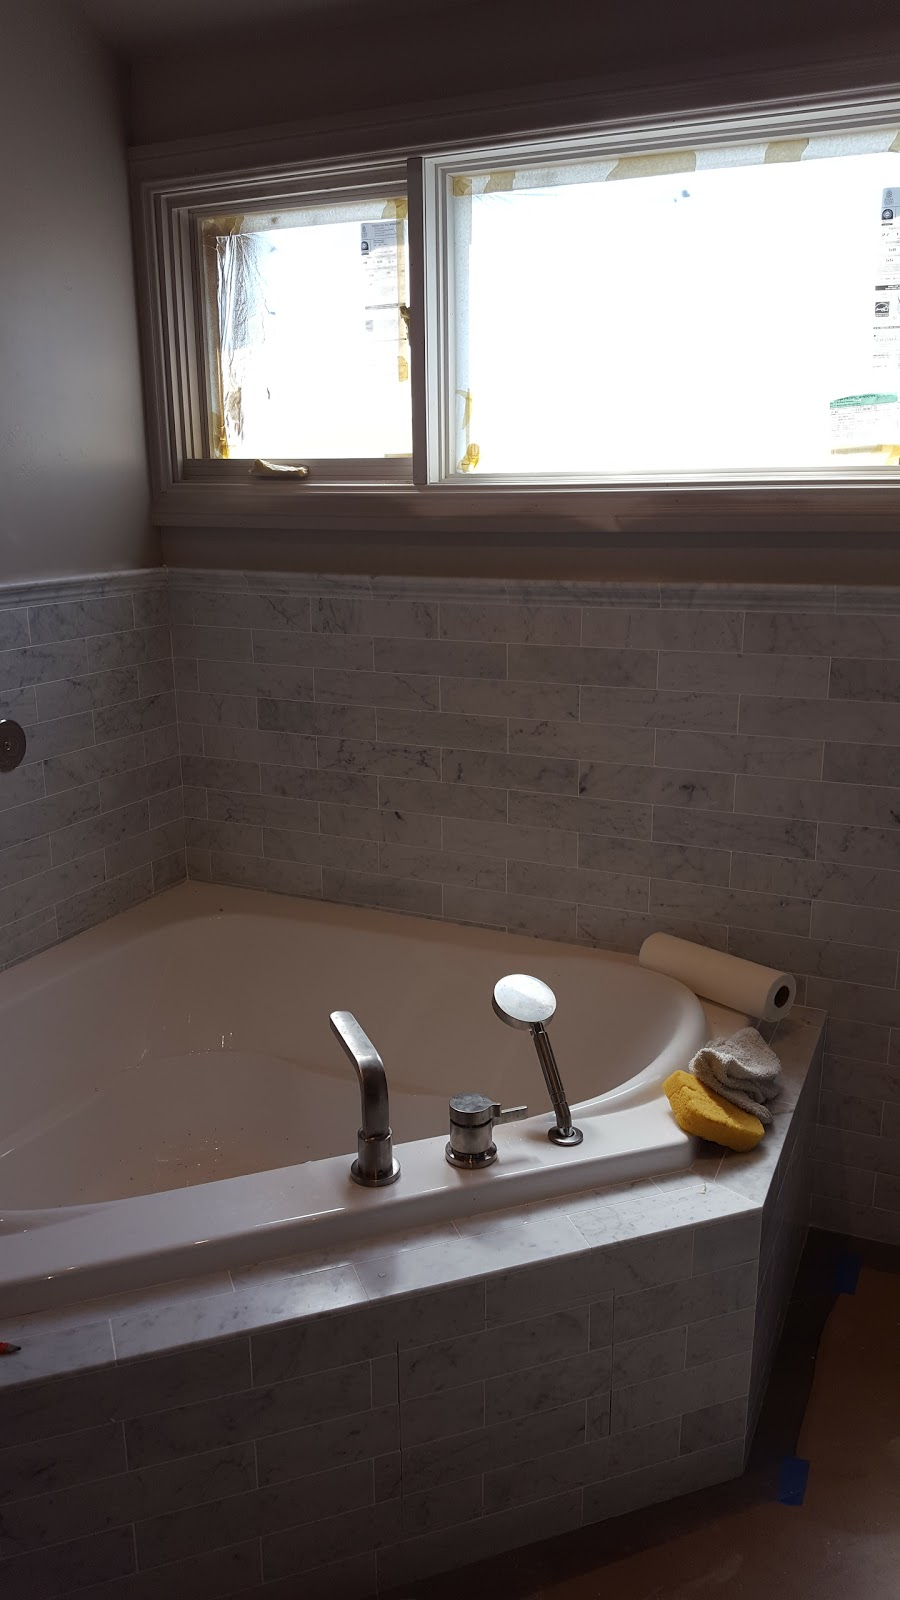 Andys Plumbing San Diego 619 952 7063: Jacuzzi Tub Installation